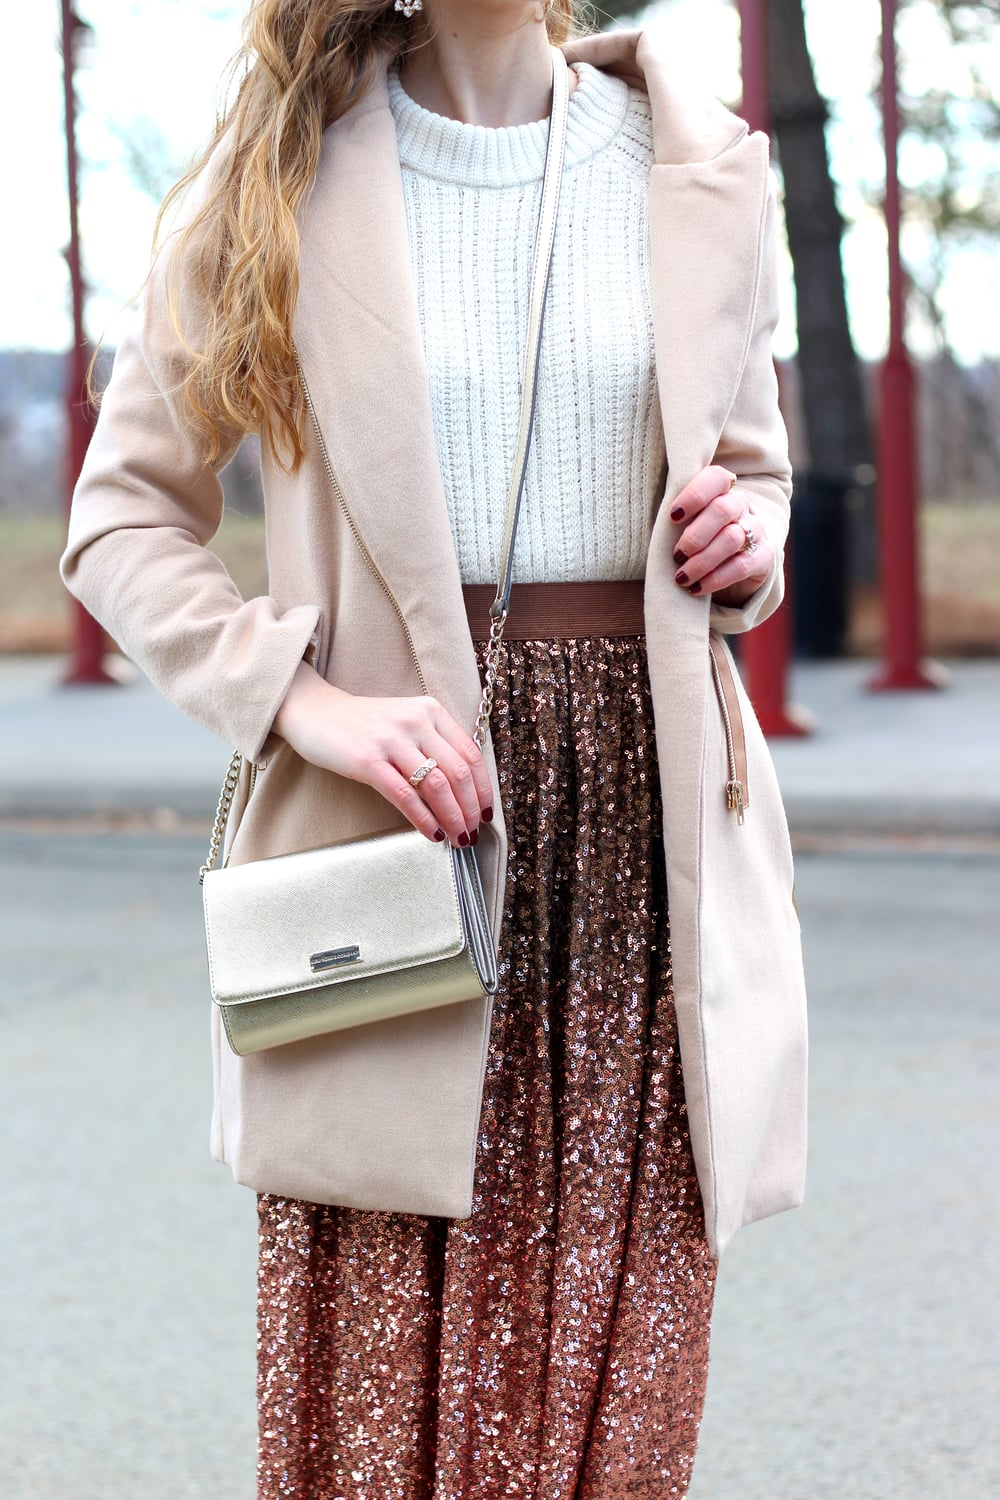 Sequin Skirt- Enchanting Elegance